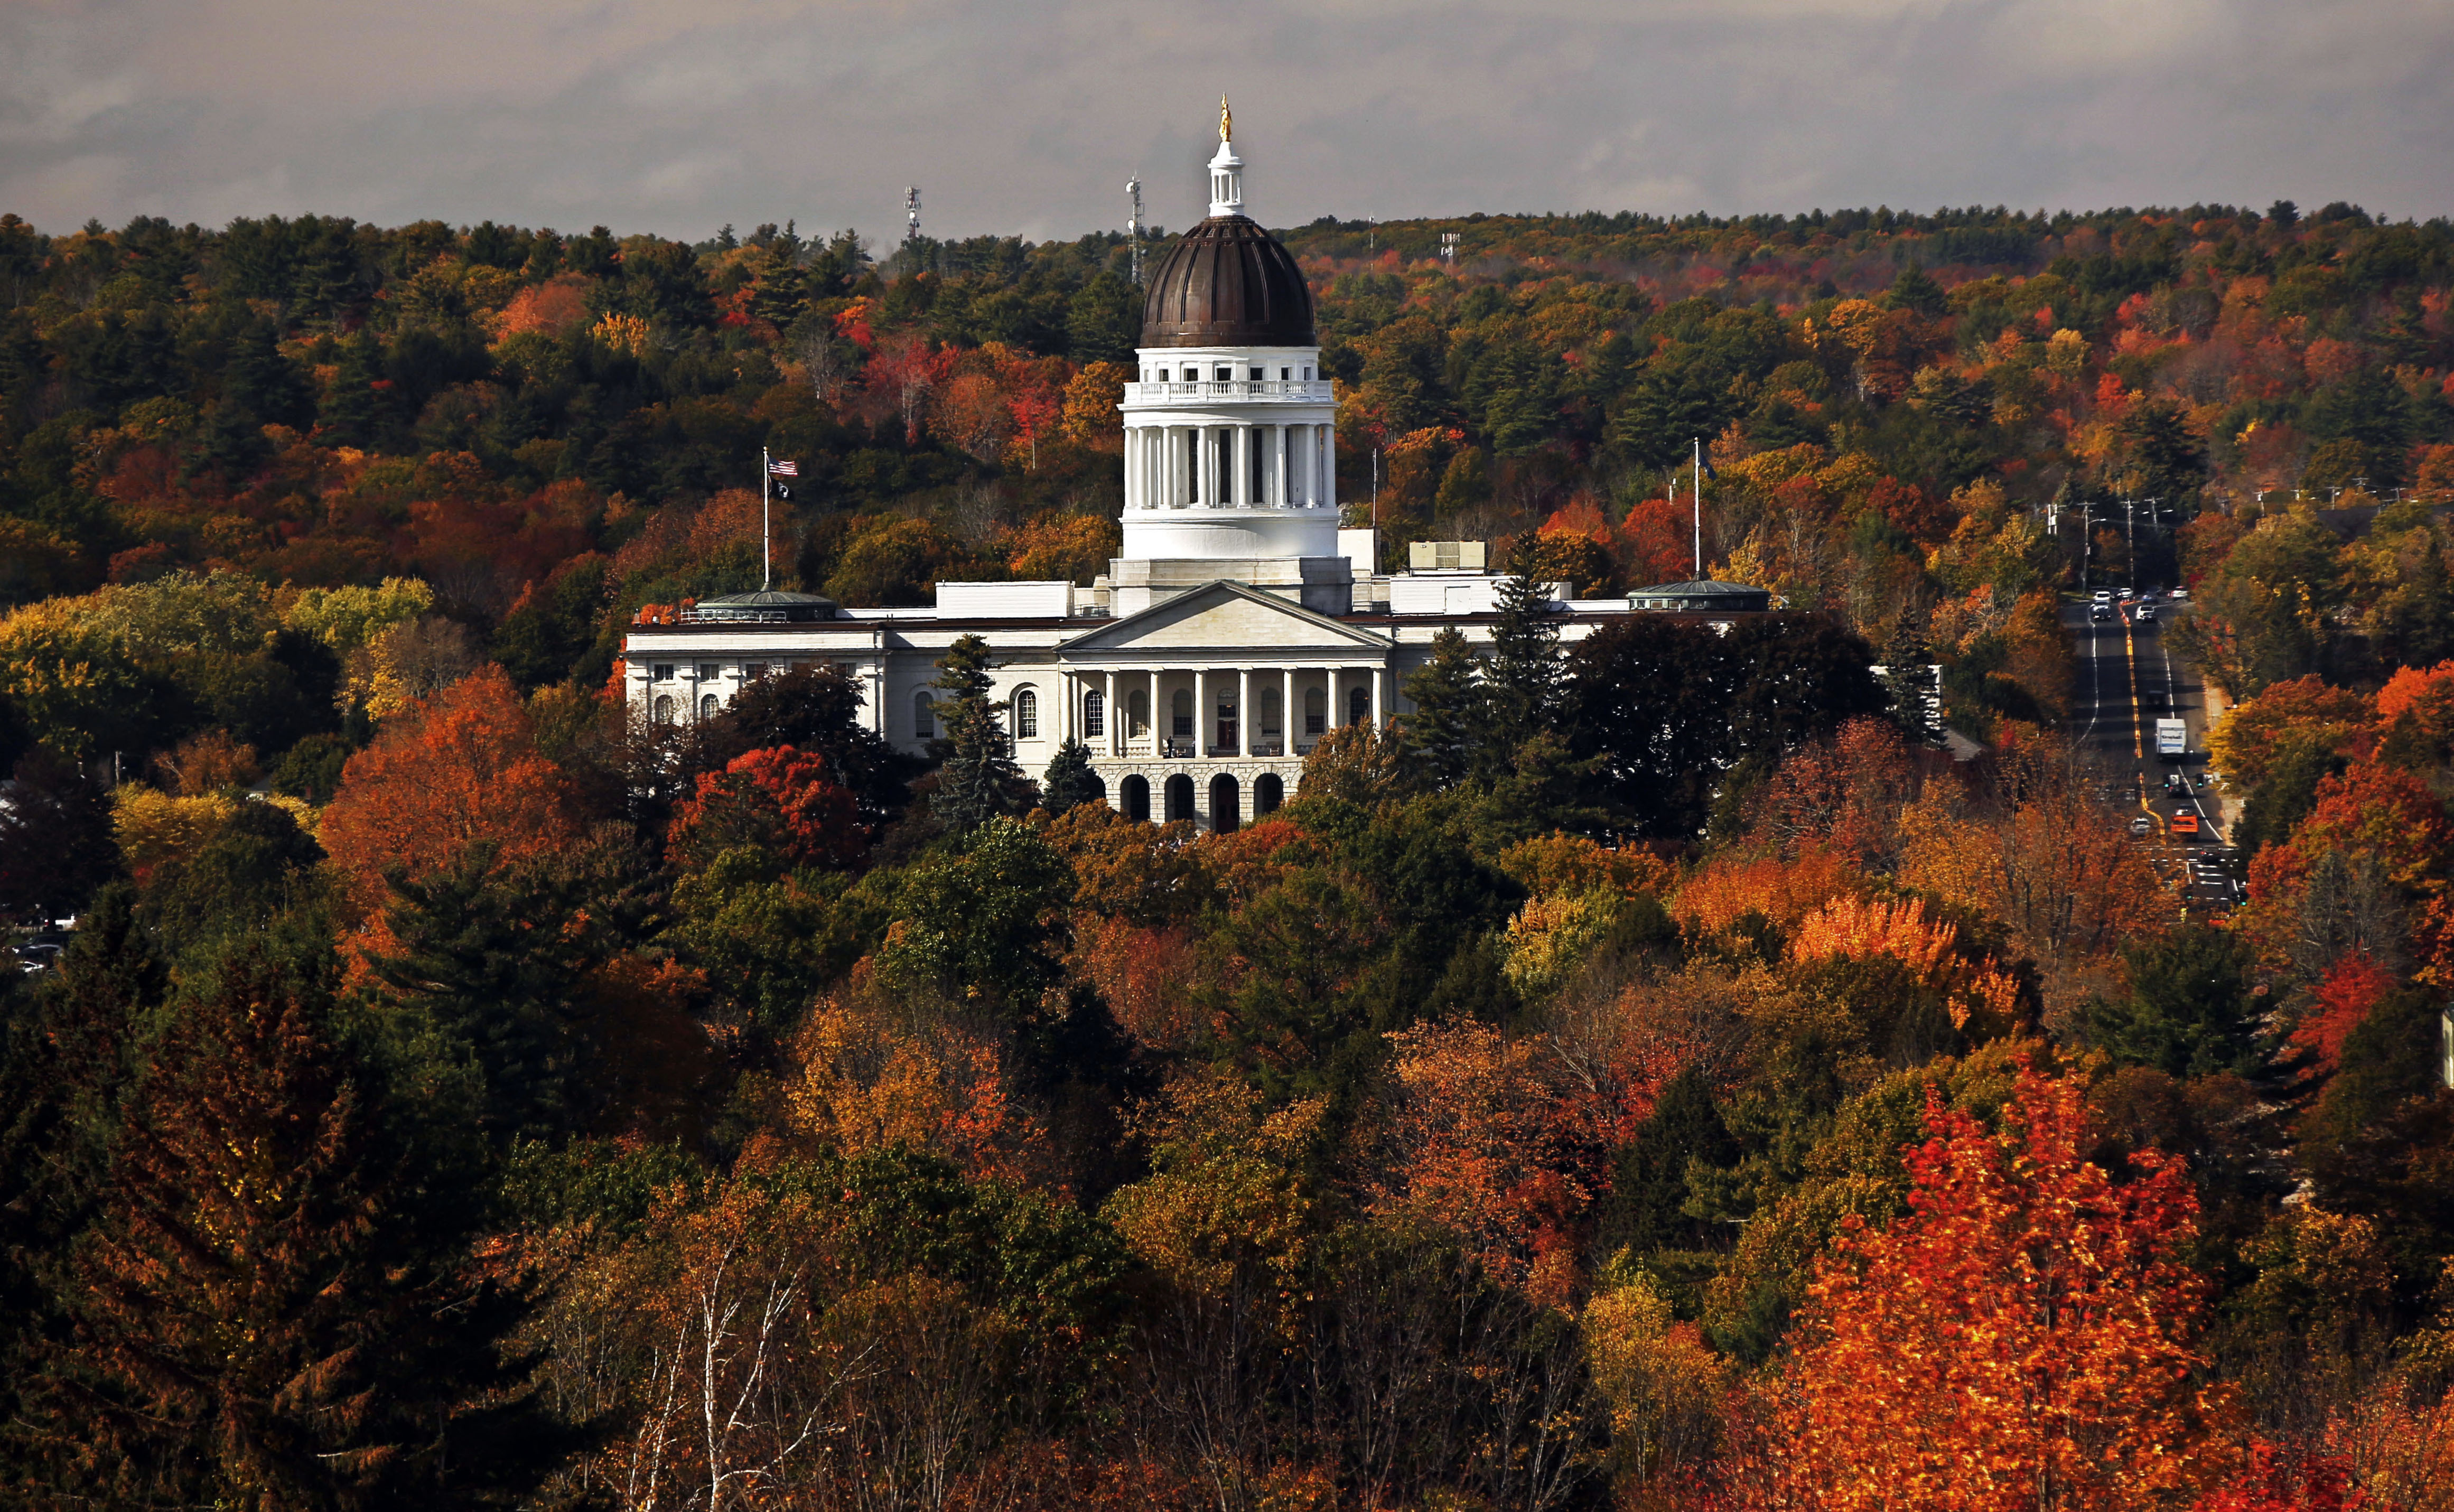 Westlake Legal Group maine-legislature- Maine assisted-suicide bill reaches governor's desk; would be 8th state to legalize option for terminally ill fox-news/us/us-regions/northeast/maine fox-news/politics/state-and-local fox-news/health/healthy-living/health-care fox news fnc/politics fnc Danielle Wallace cd6dd65a-937a-5a2c-8d98-815d5ba0050a article